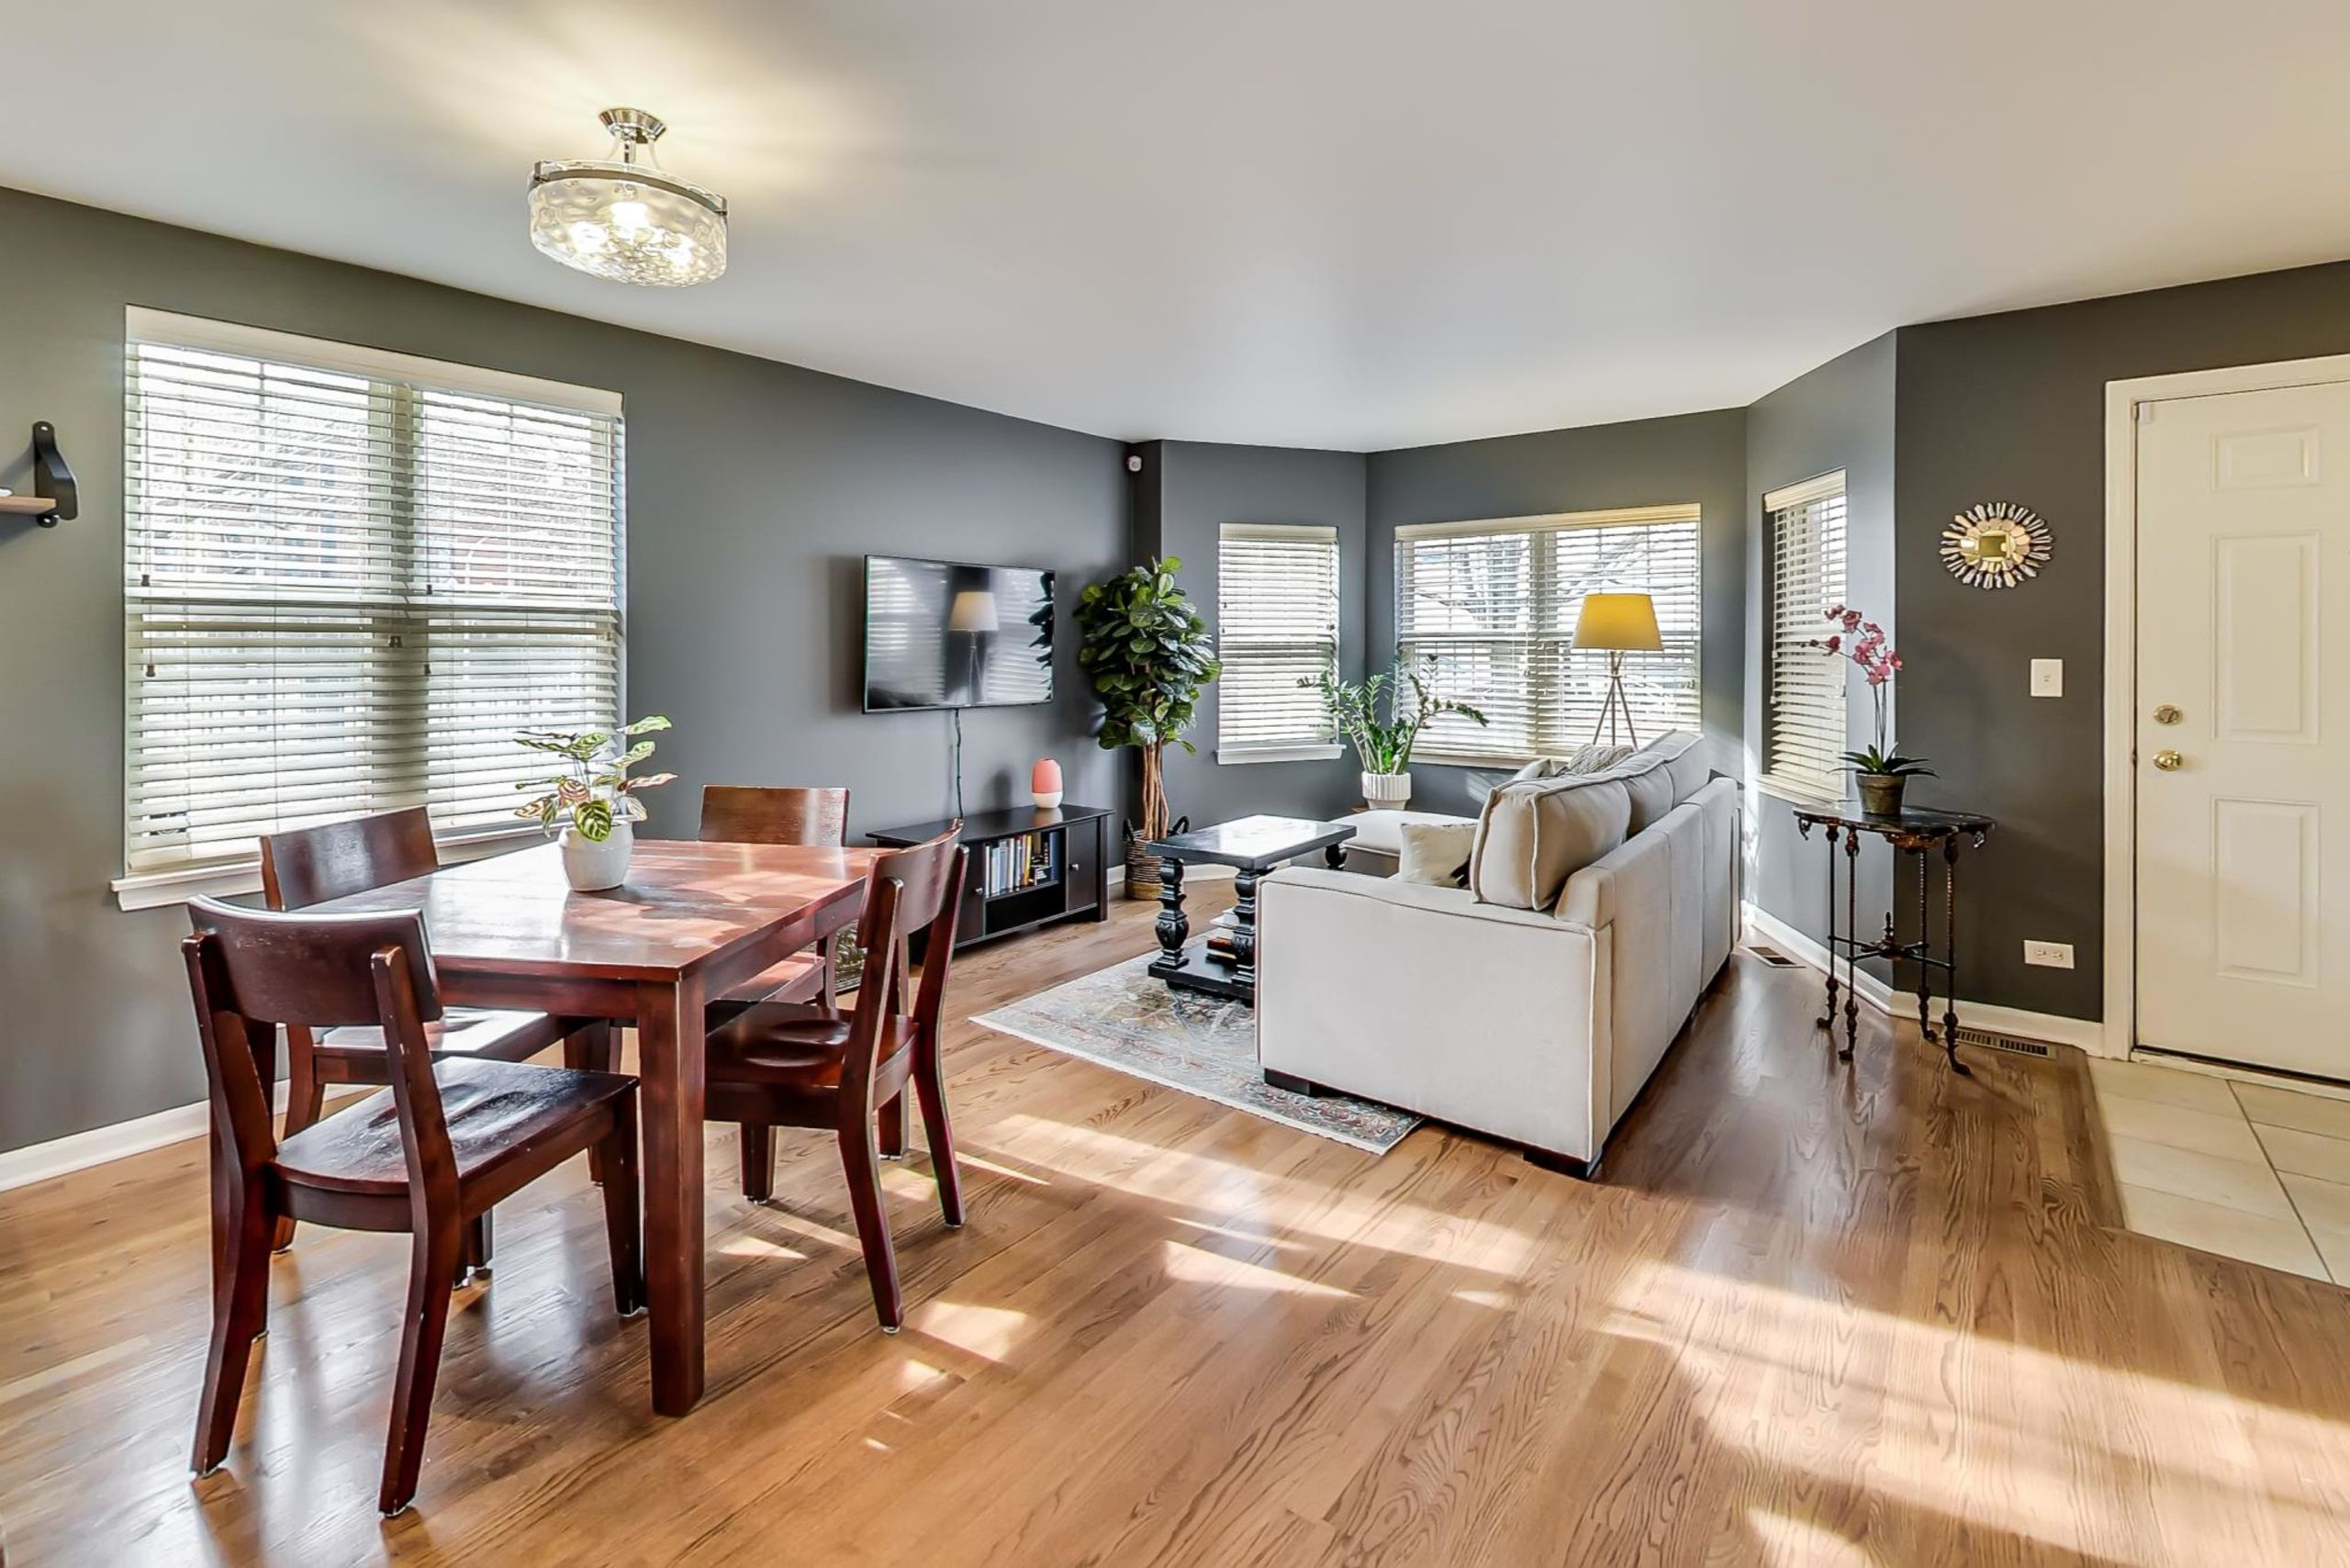 Click Photo For 3D Tour - 1101 N. Crosby #A